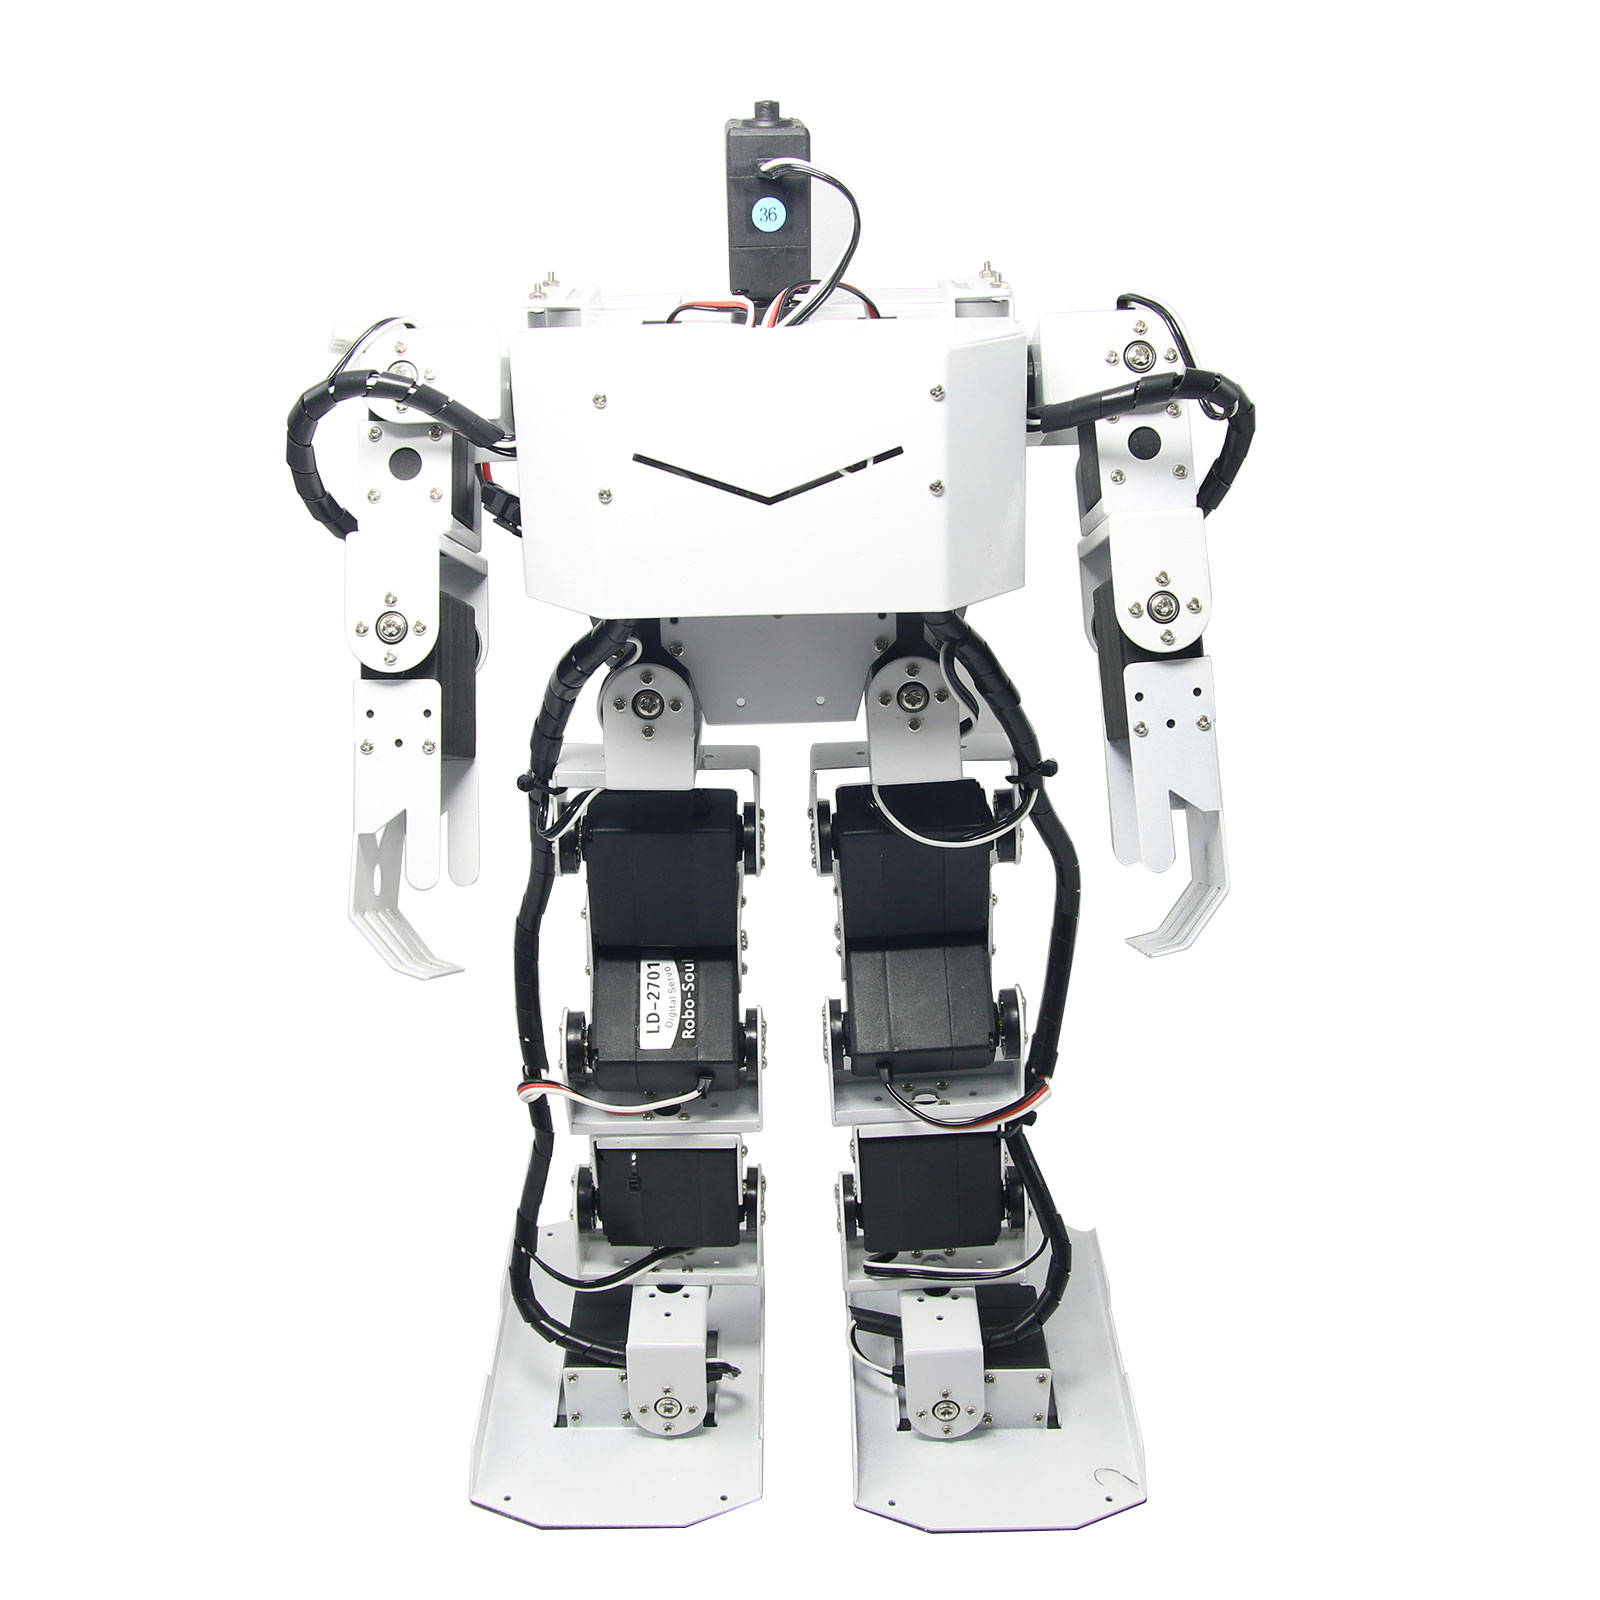 17DOF Robo-Soul H3.0 Biped Robotics Humanoid Robot Aluminum Frame Full Kit with 17pcs Servo + Controller new 17 degrees of freedom humanoid robot saibov6 teaching and research biped robot platform model no electronic control system